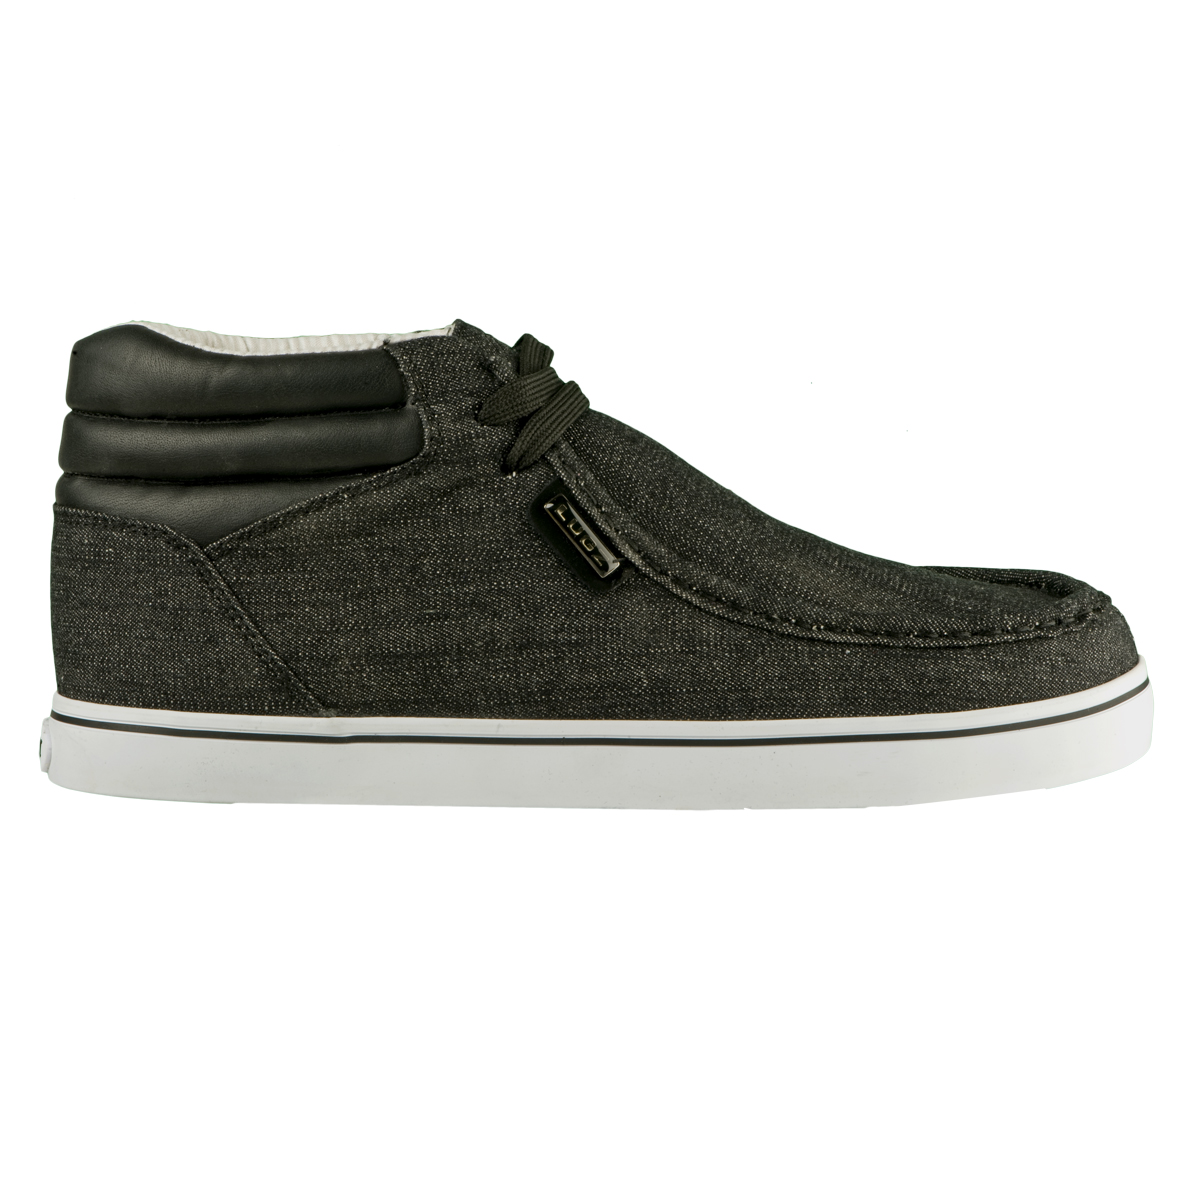 lugz ease mens shoe black white stylish footwear